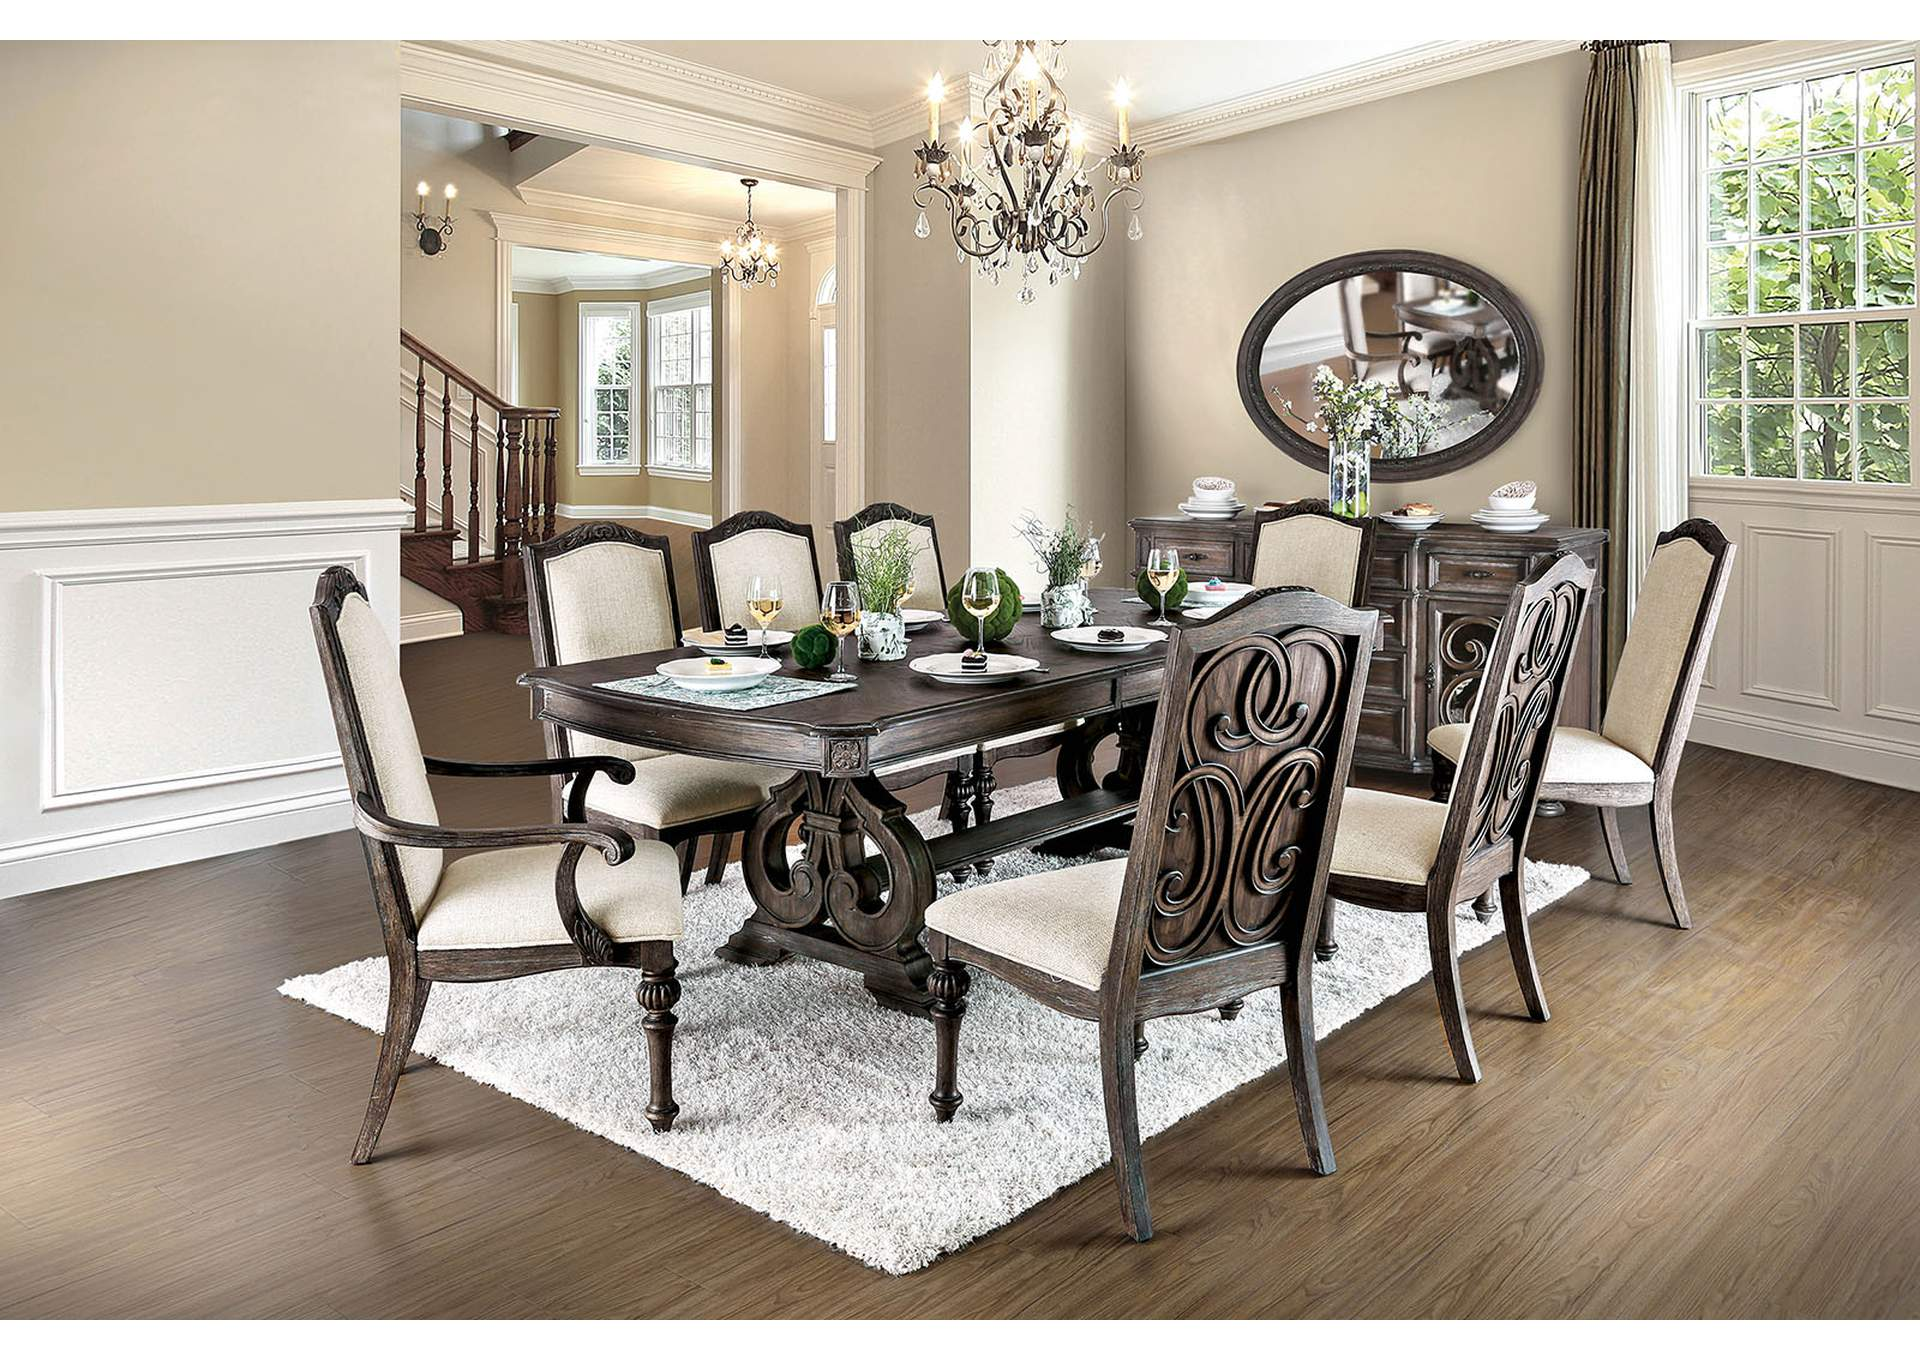 Arcadia Rustic Dining Table w/18